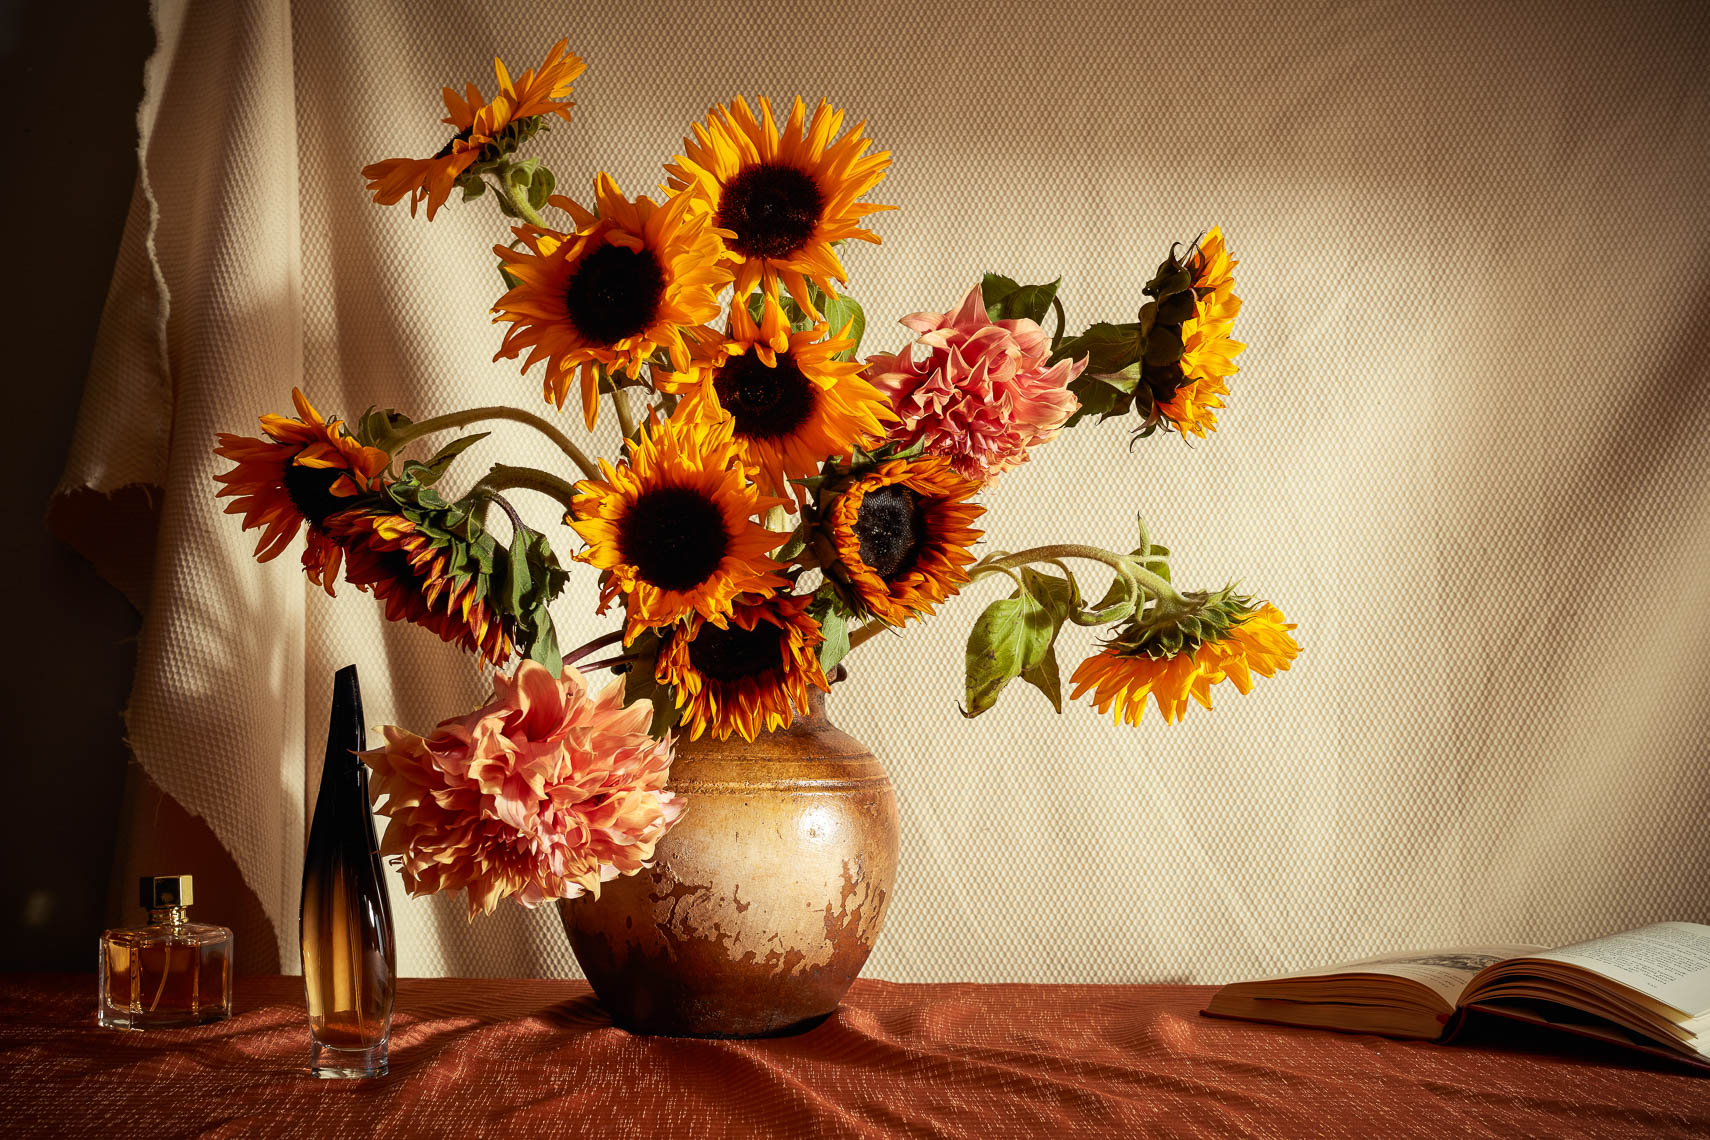 product photographer sunflowers and perfume still life photography with vase